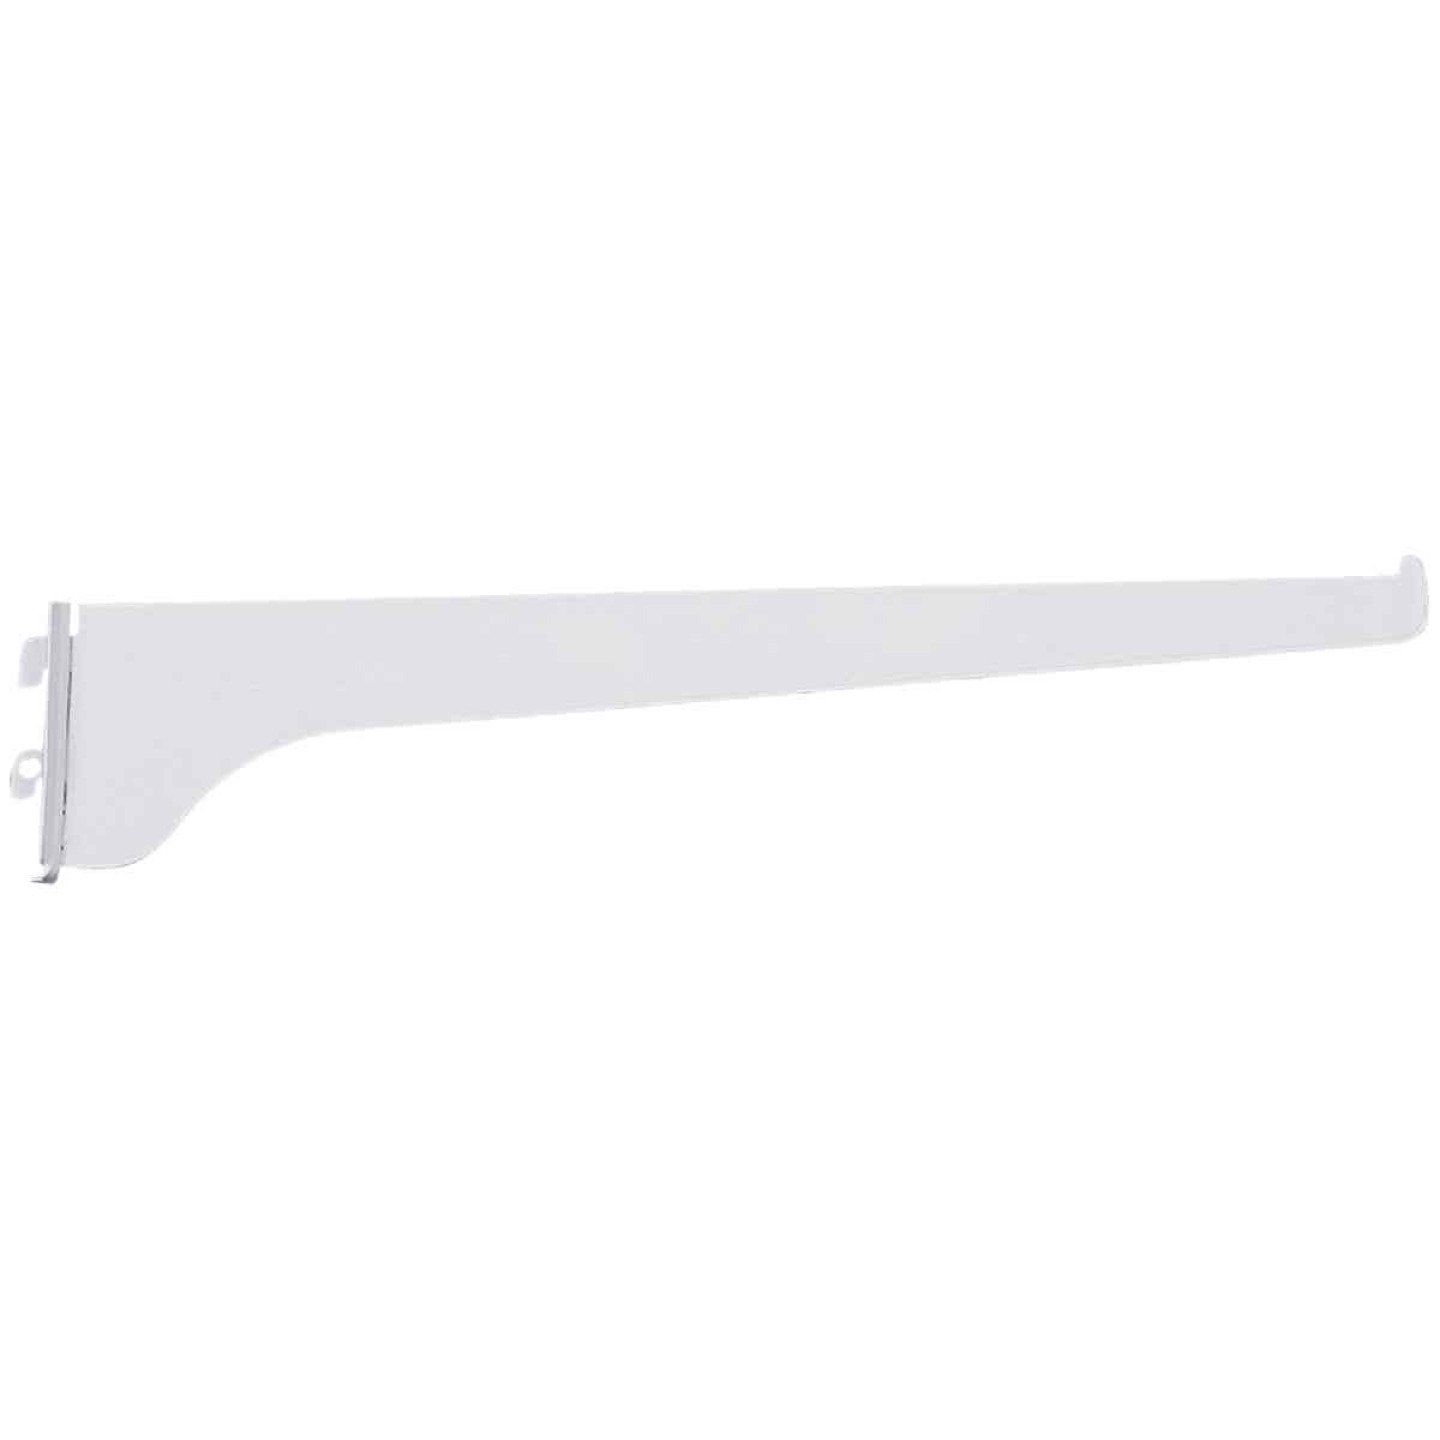 Knape & Vogt 180 Series 12 In. Titanium Steel Regular-Duty Single-Slot Shelf Bracket Image 1